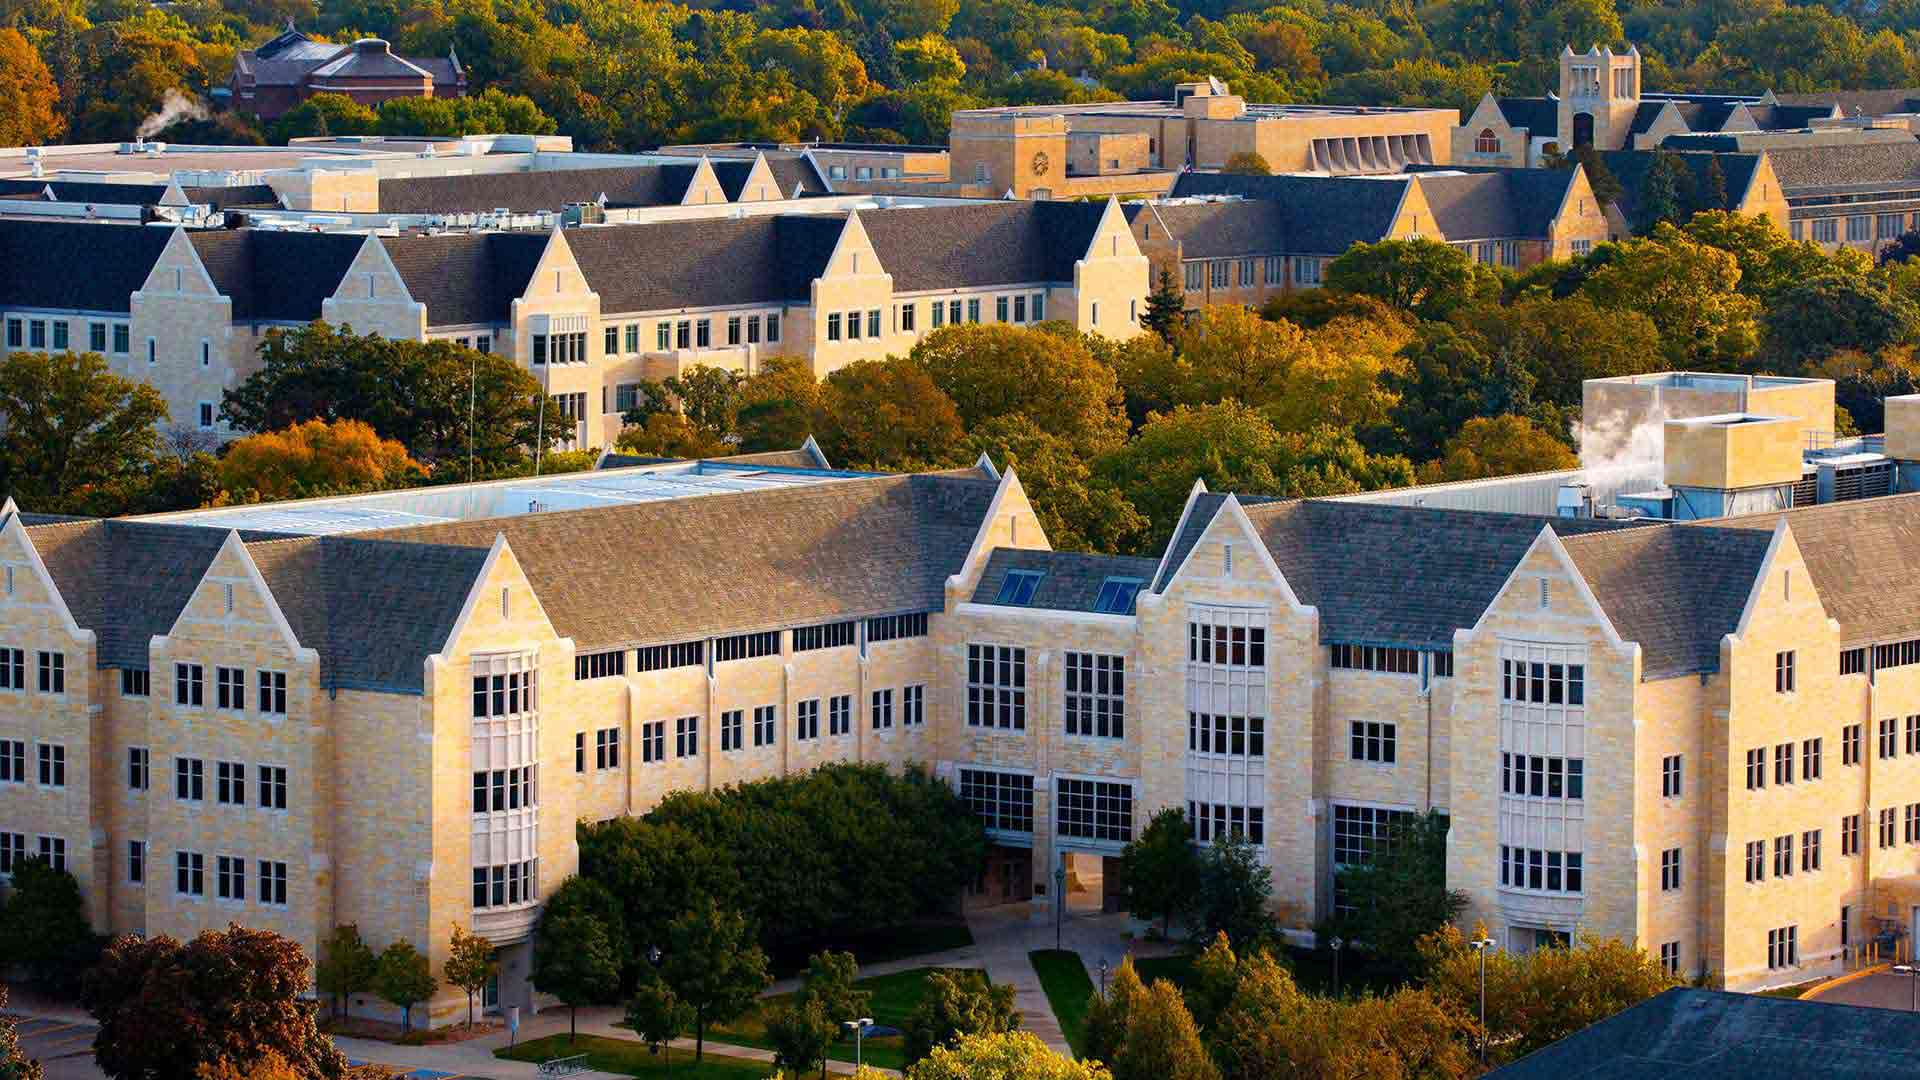 The St. Paul campus is seen from the south campus in this aerial view.